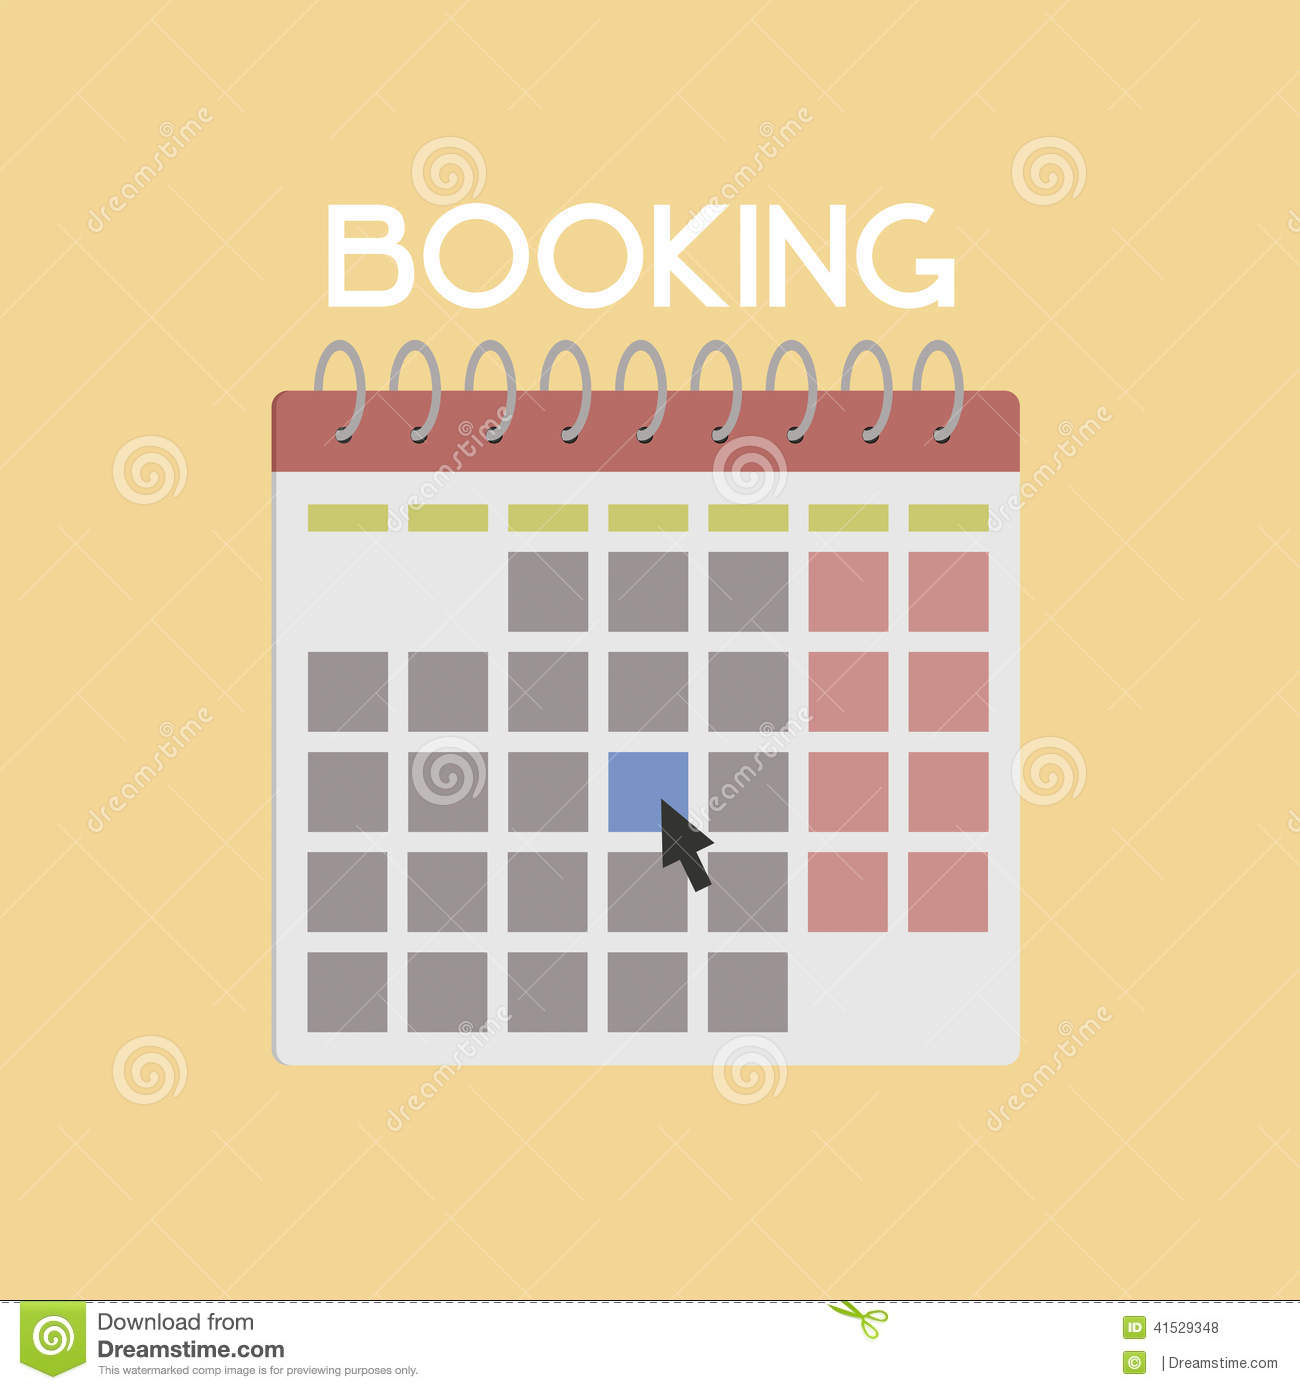 how to find reservation in booking.com